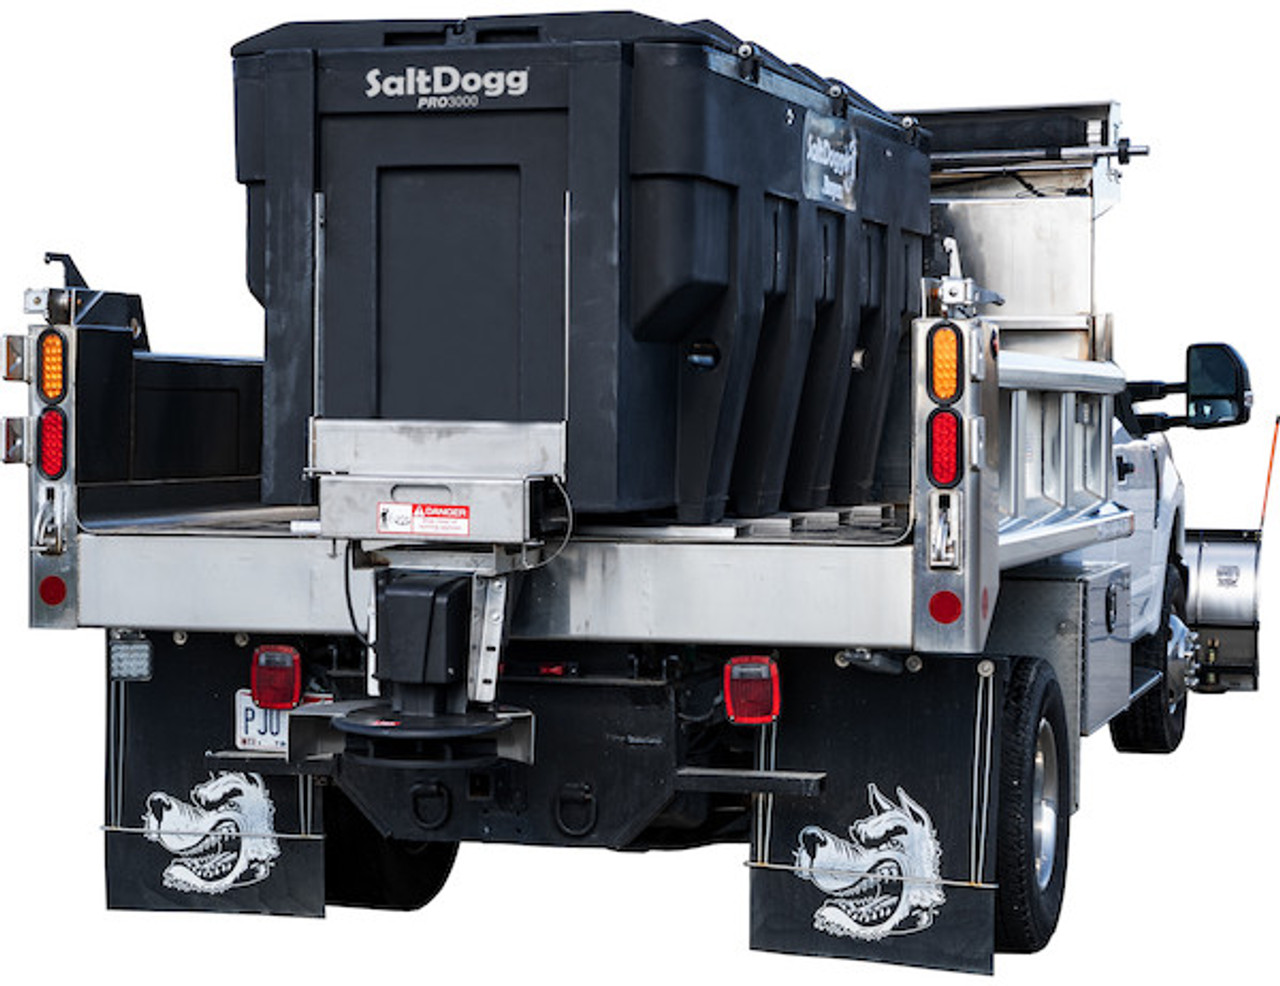 PRO3000 BUYERS SaltDogg® PRO3000 Electric Poly Hopper Spreader With Auger 1